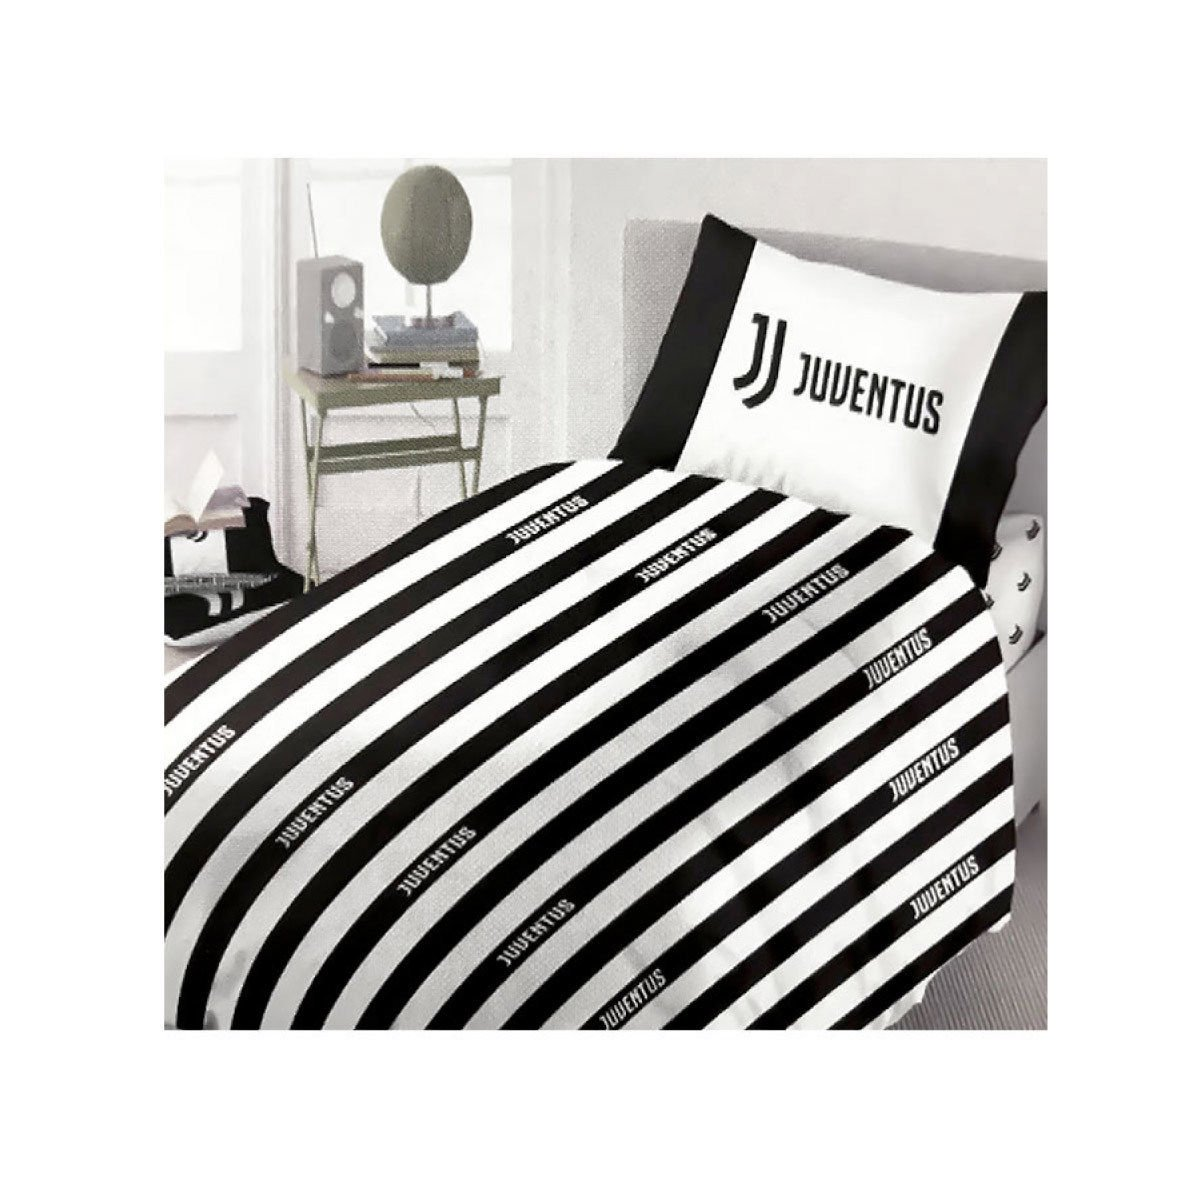 Juventus 6808 490 S001 Duvet Cover Set 100 Cotton White Black Single 50 X 40 X 2 5 Cm Buy Online In Albania Juventus F C Products In Albania See Prices Reviews And Free Delivery Over 7 500 Lek Desertcart